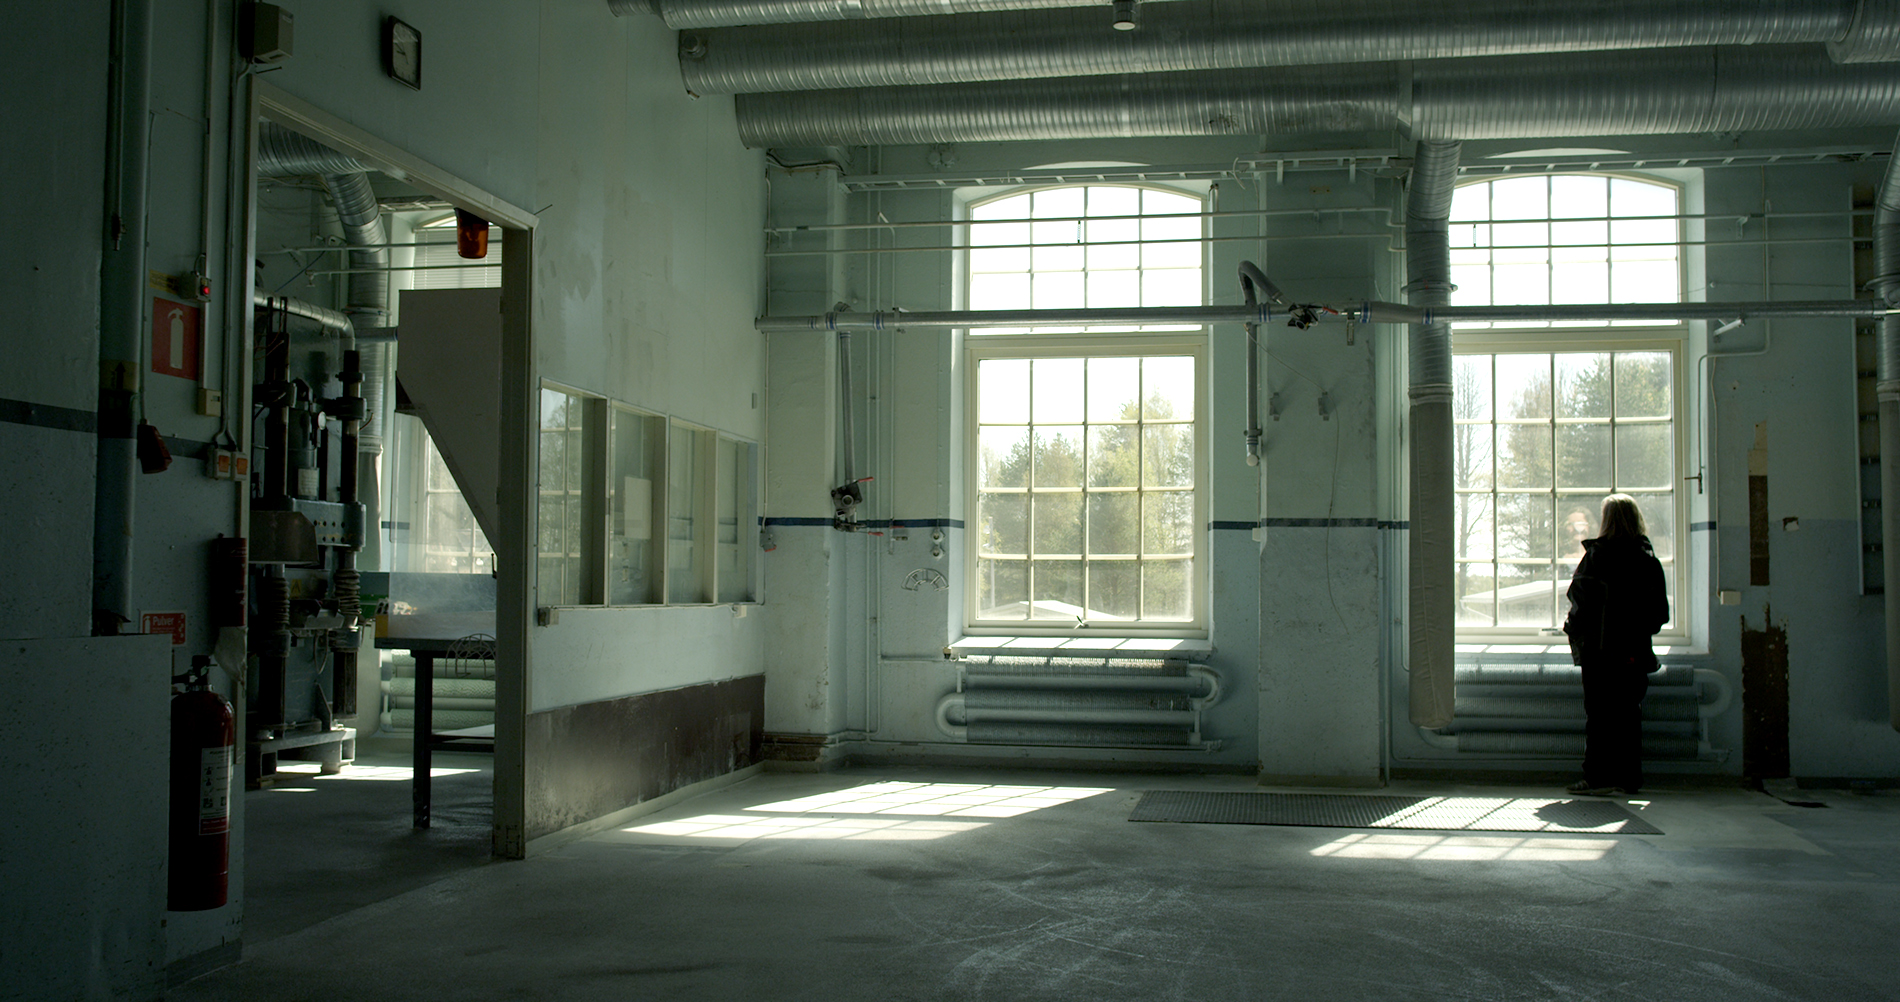 A single person in an empty room in the factory.